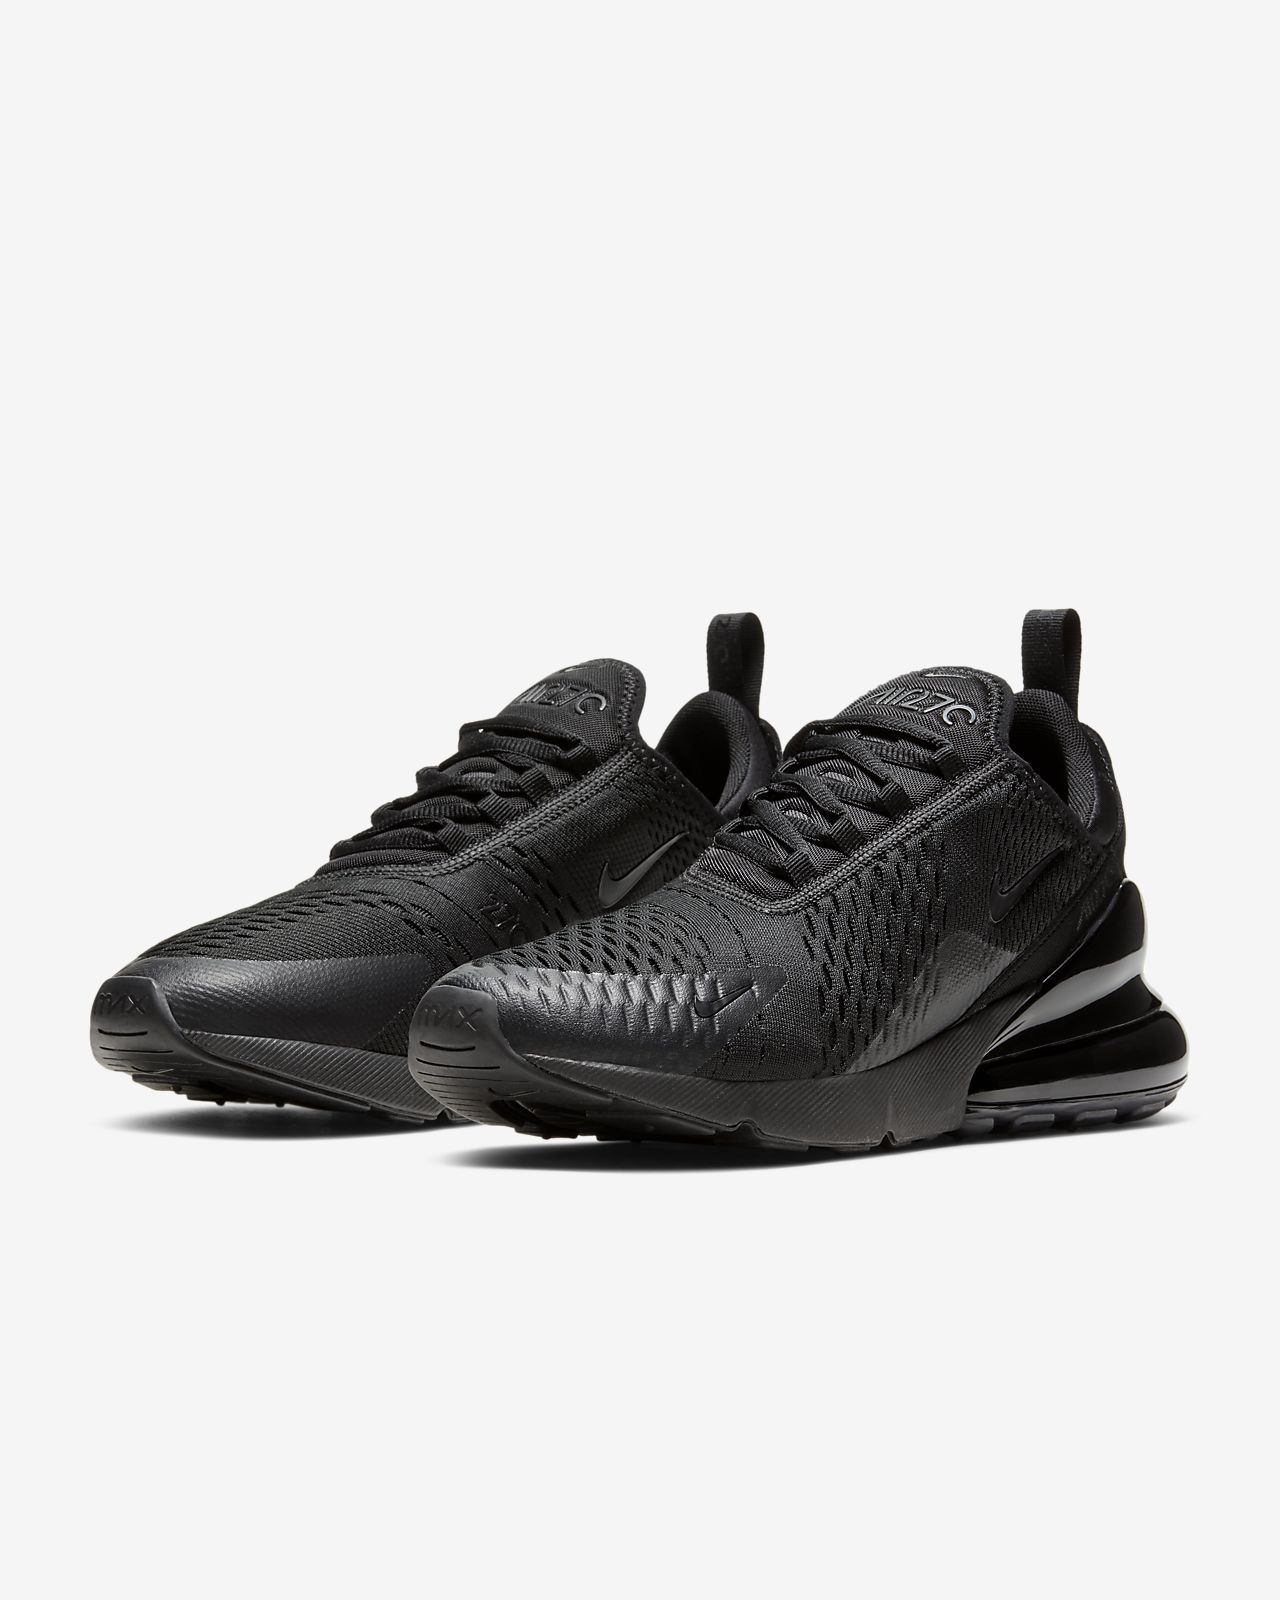 Nike Air Max Plus Tn Se Herrenschuh Schwarz from Nike on 21 Buttons